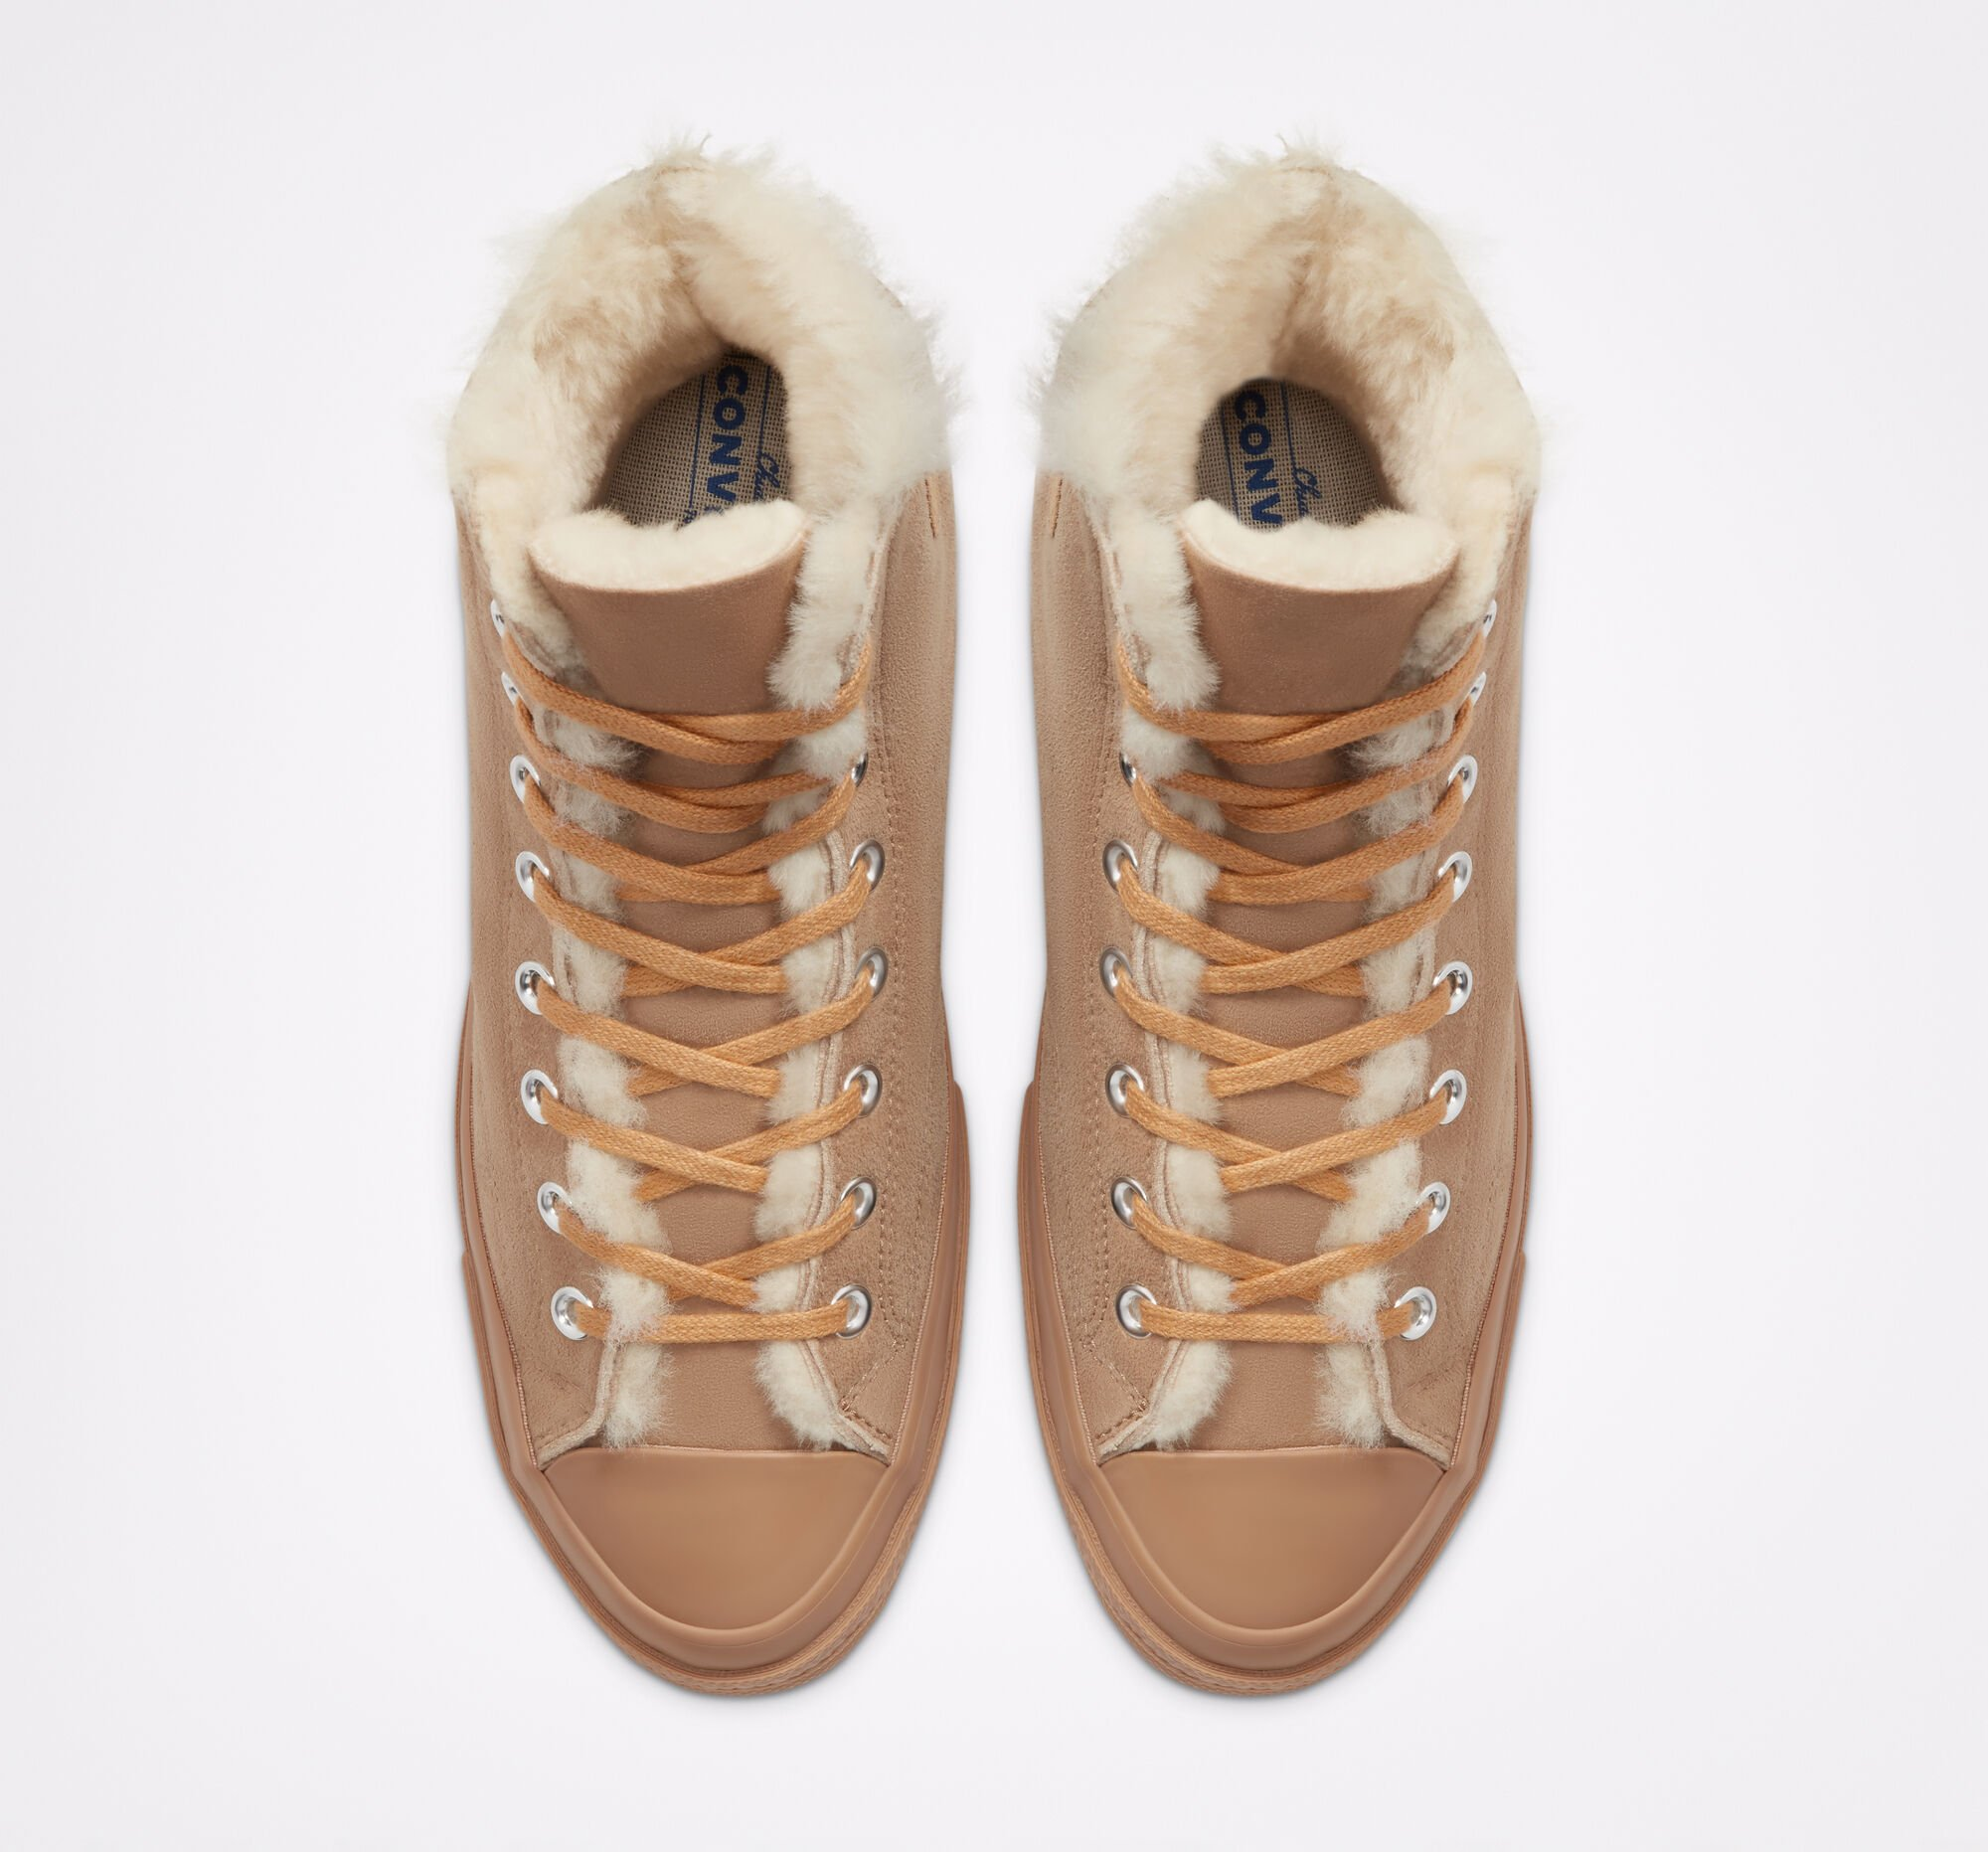 Converse $30 Styles, $40 Styles, $50 Styles Sale: Suede Shearling Chuck 70 Shoes